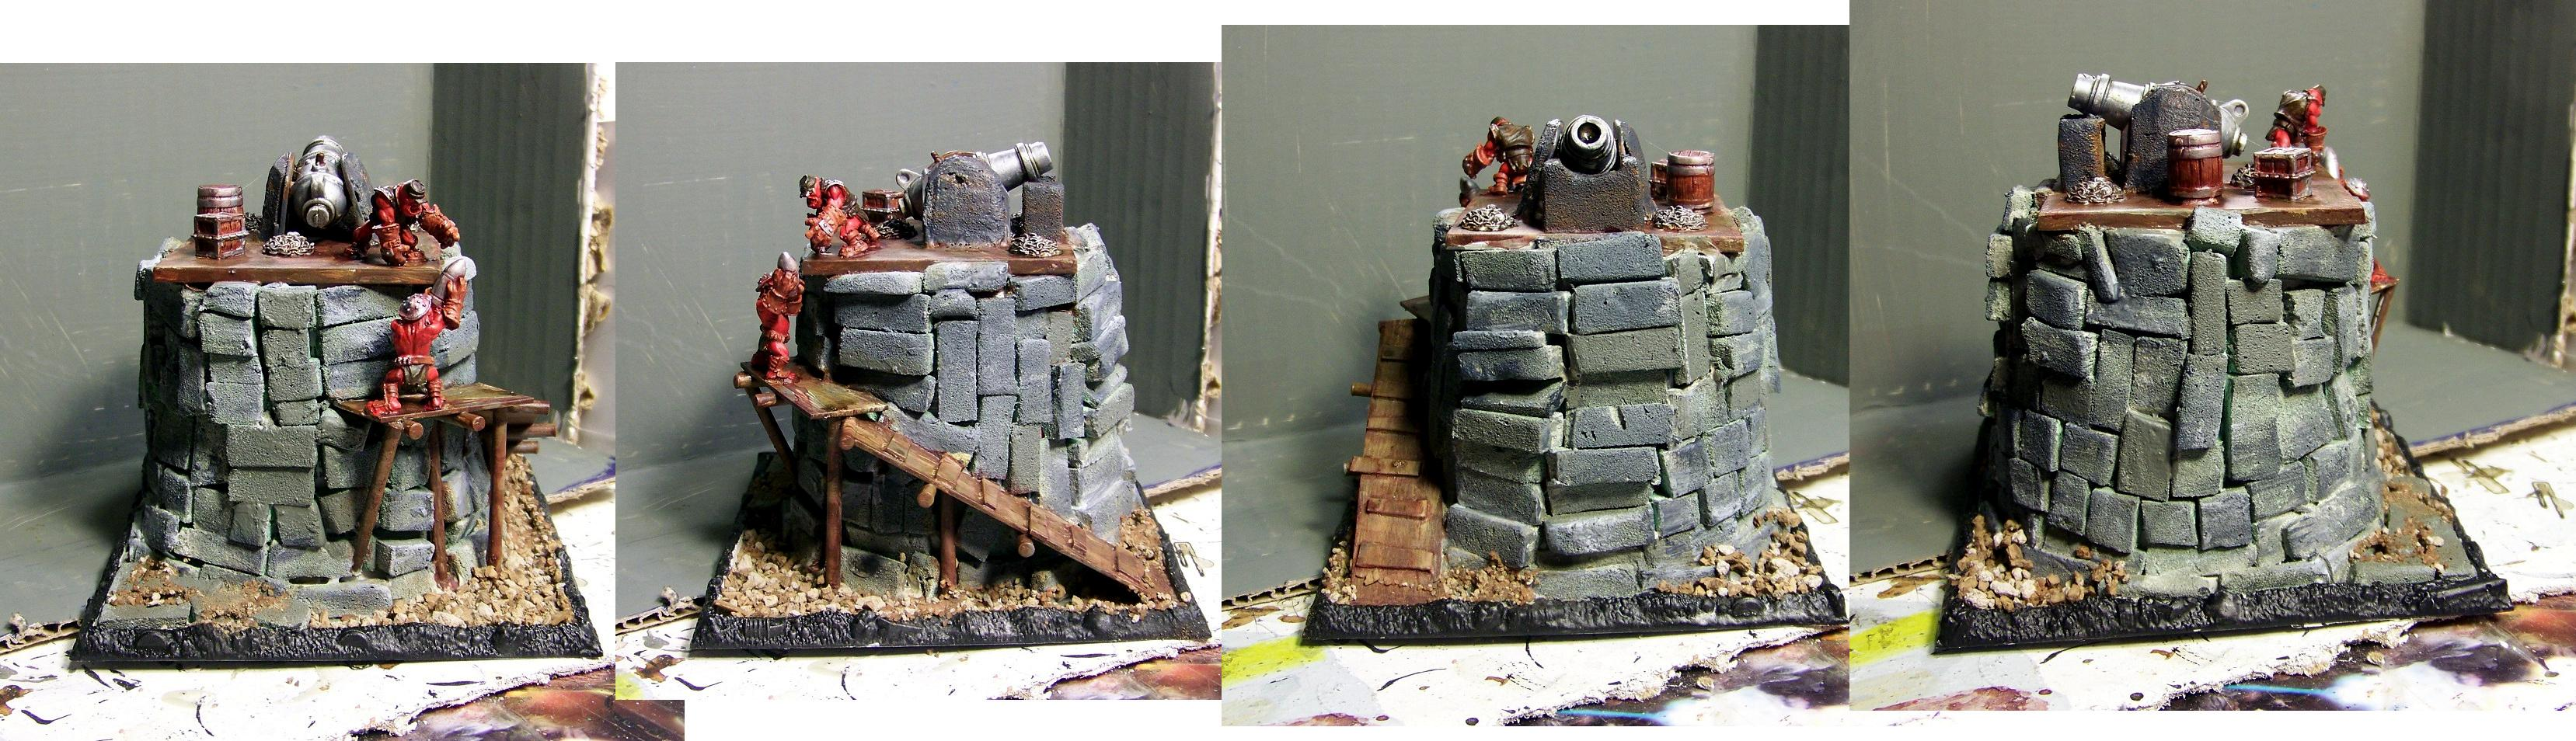 Trollblood Cannon Tower